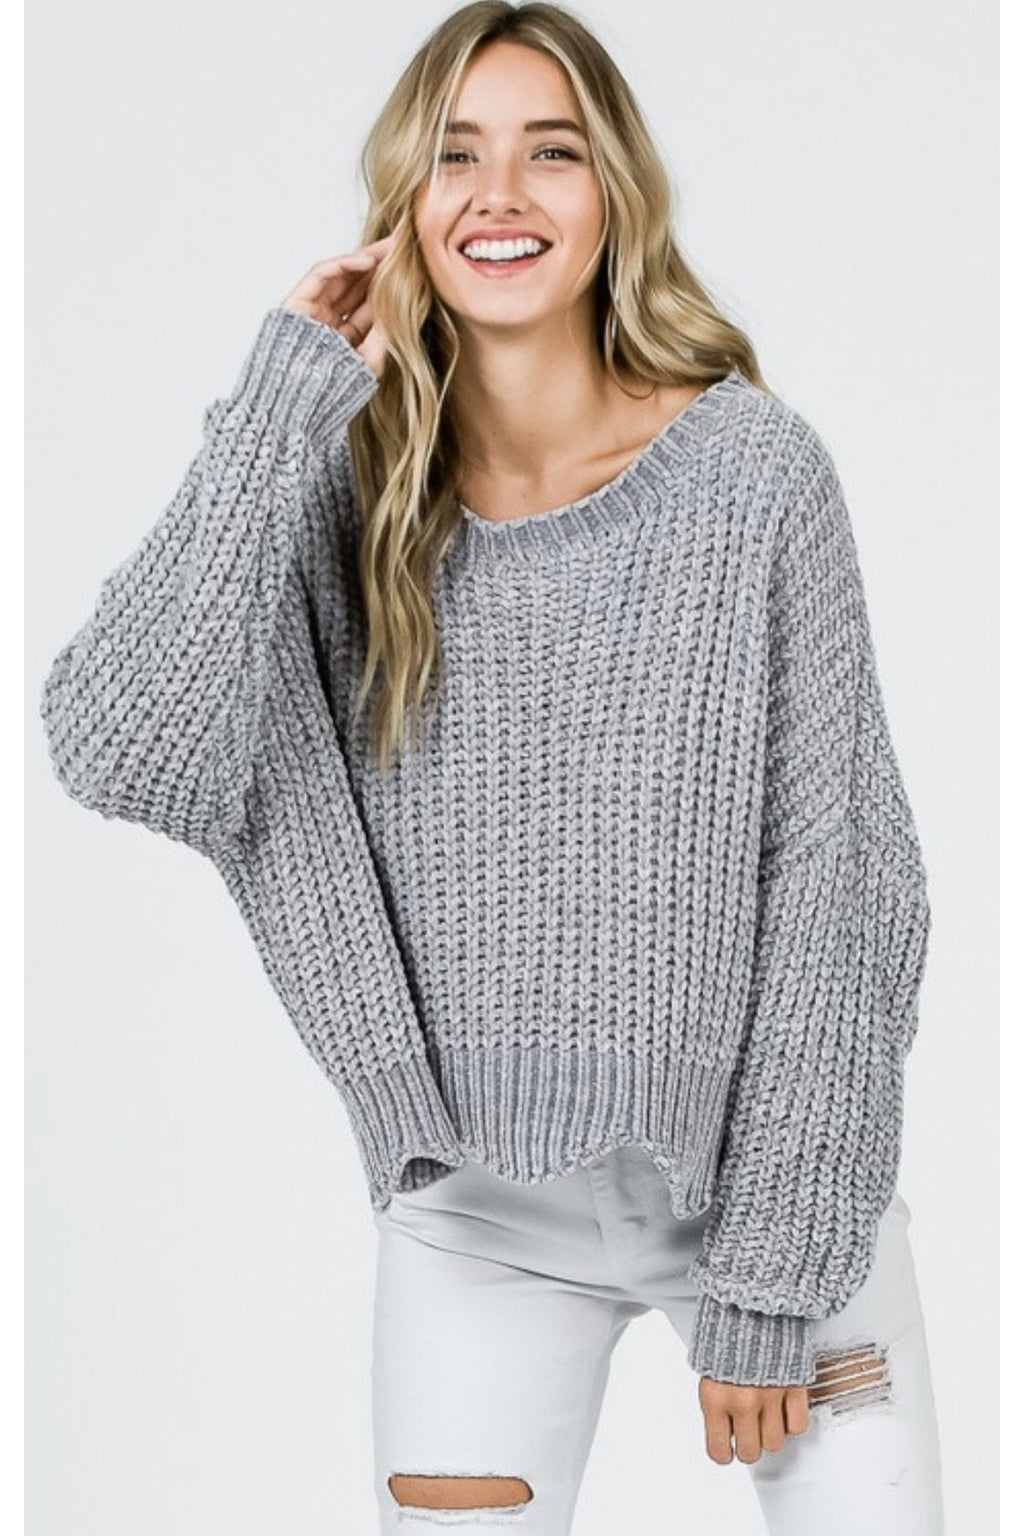 Wilomenia Wavy Sweater $48